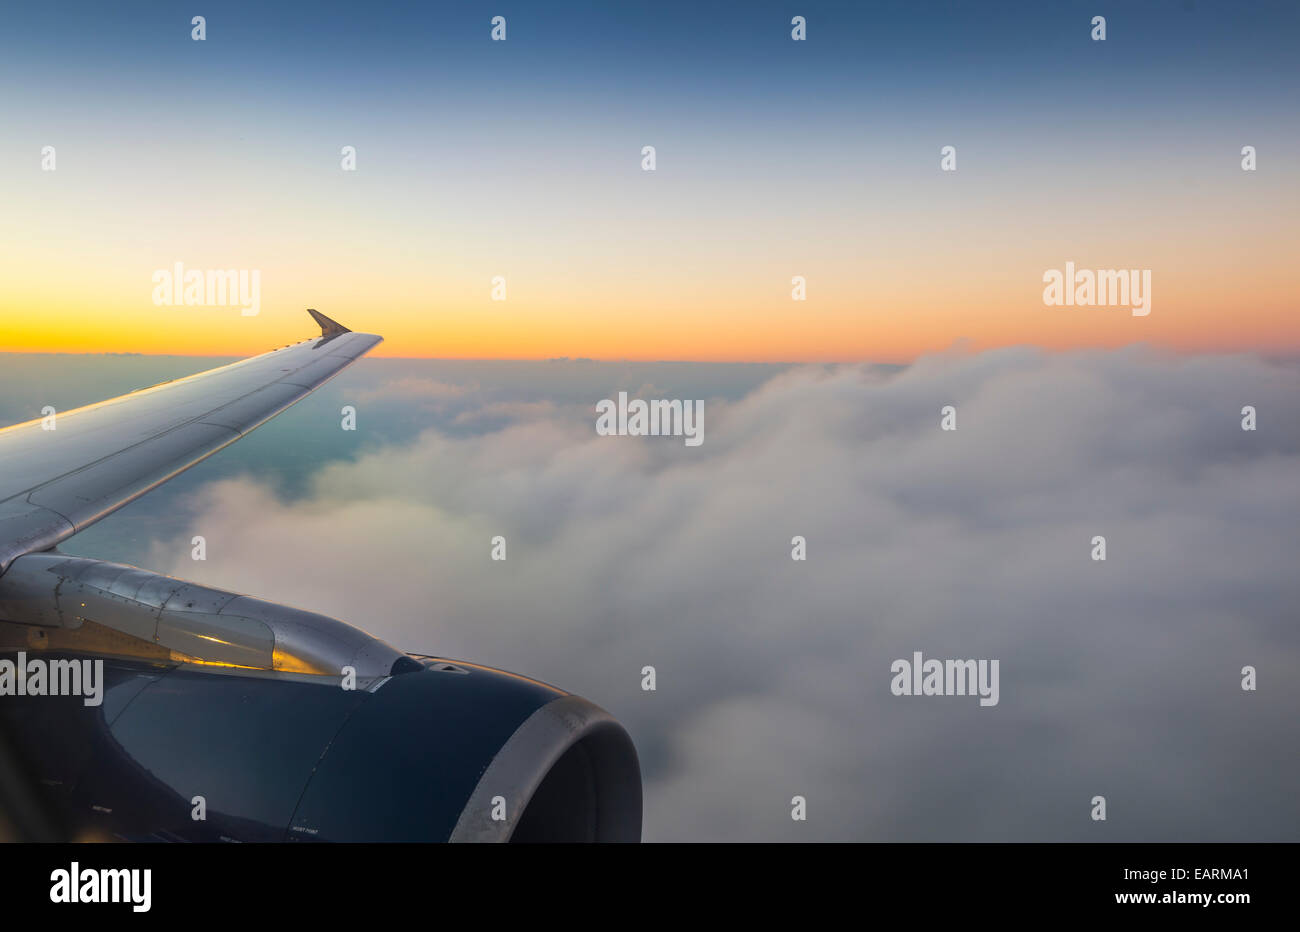 Airplane Wing And Clouds With Sunset - Stock Image